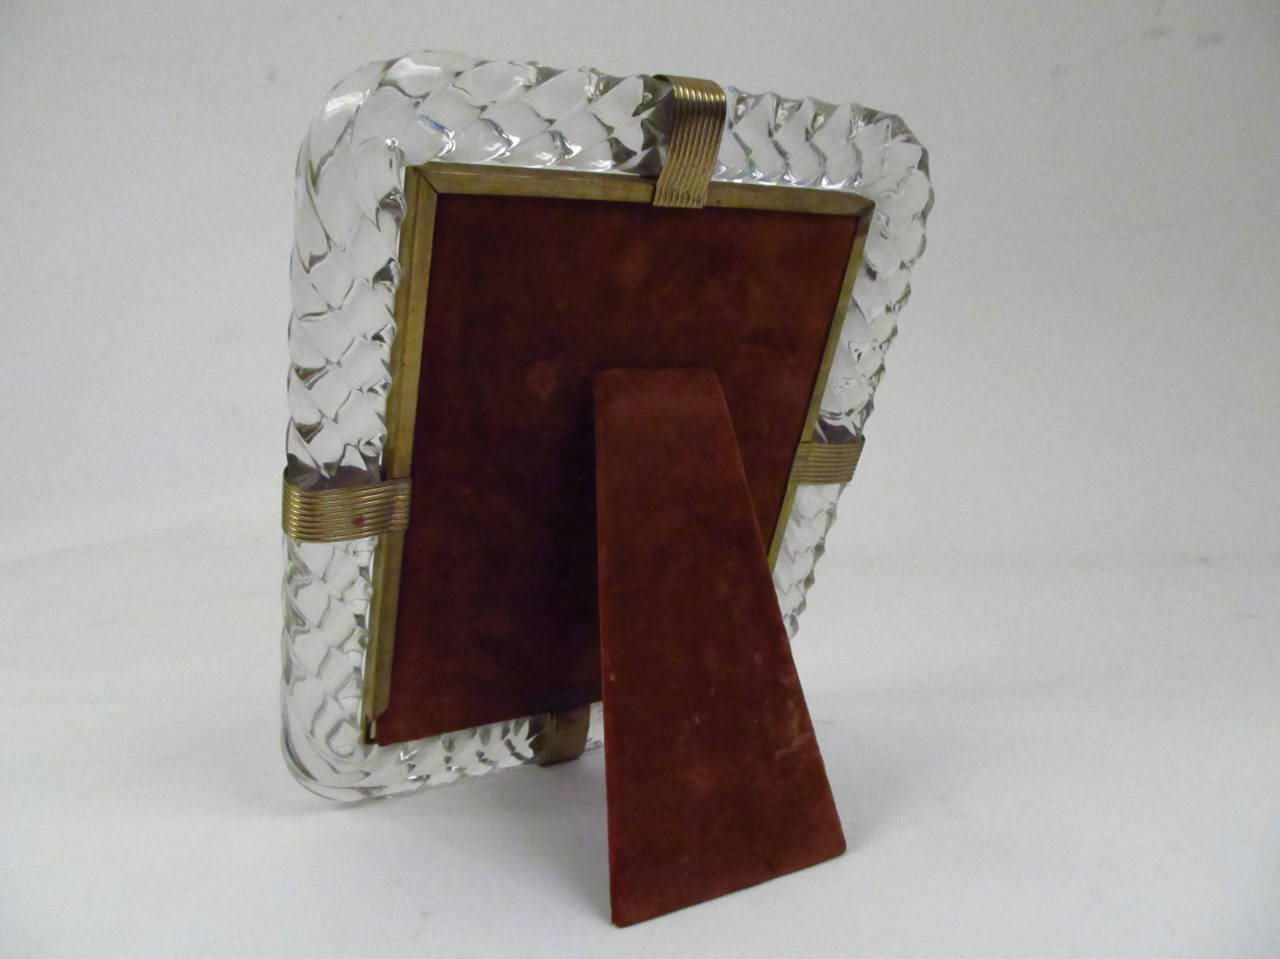 Twisted Rope Glass Picture Frame in the Manner of Venini 4